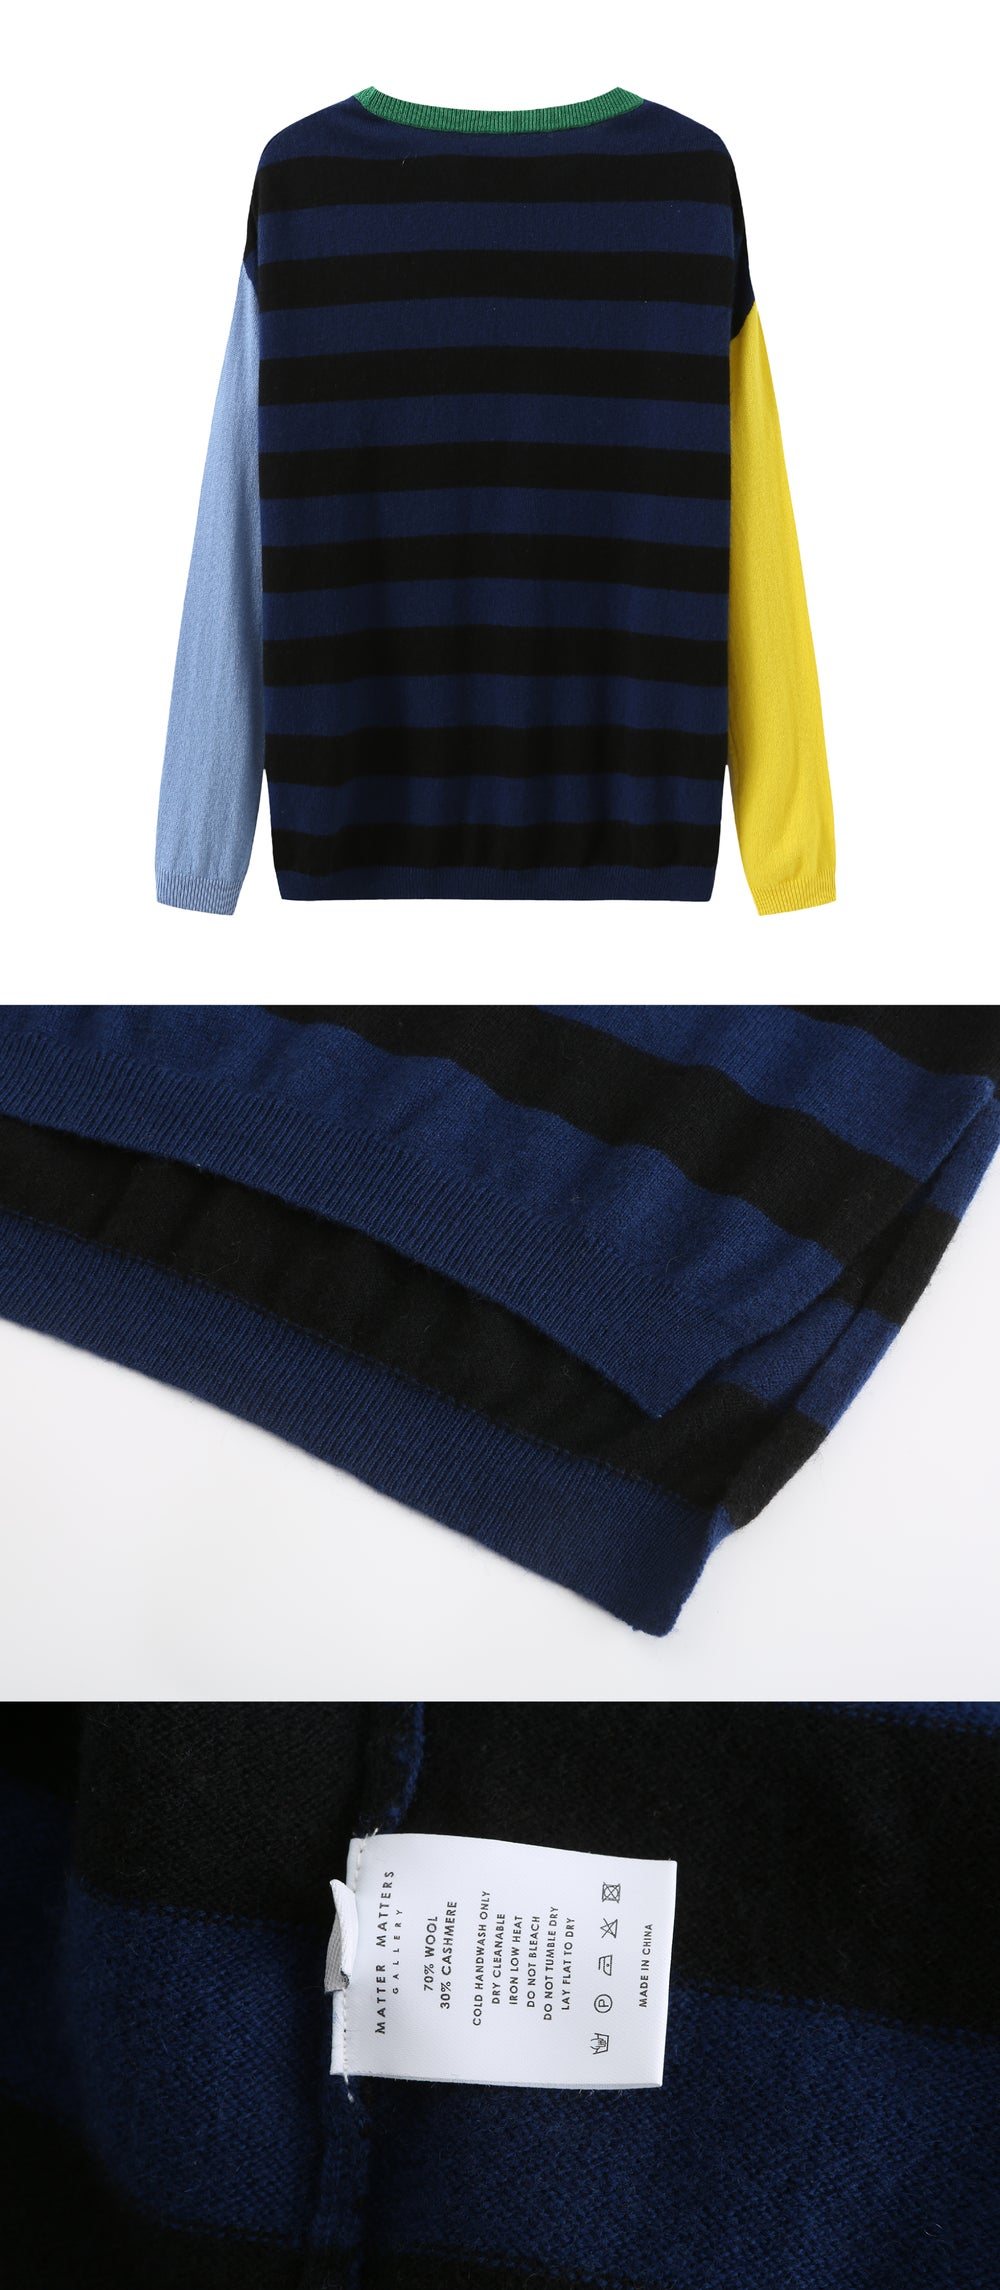 Crew Neck Intarsia Wool and Cashmere Blend Sweater - Black/Navy